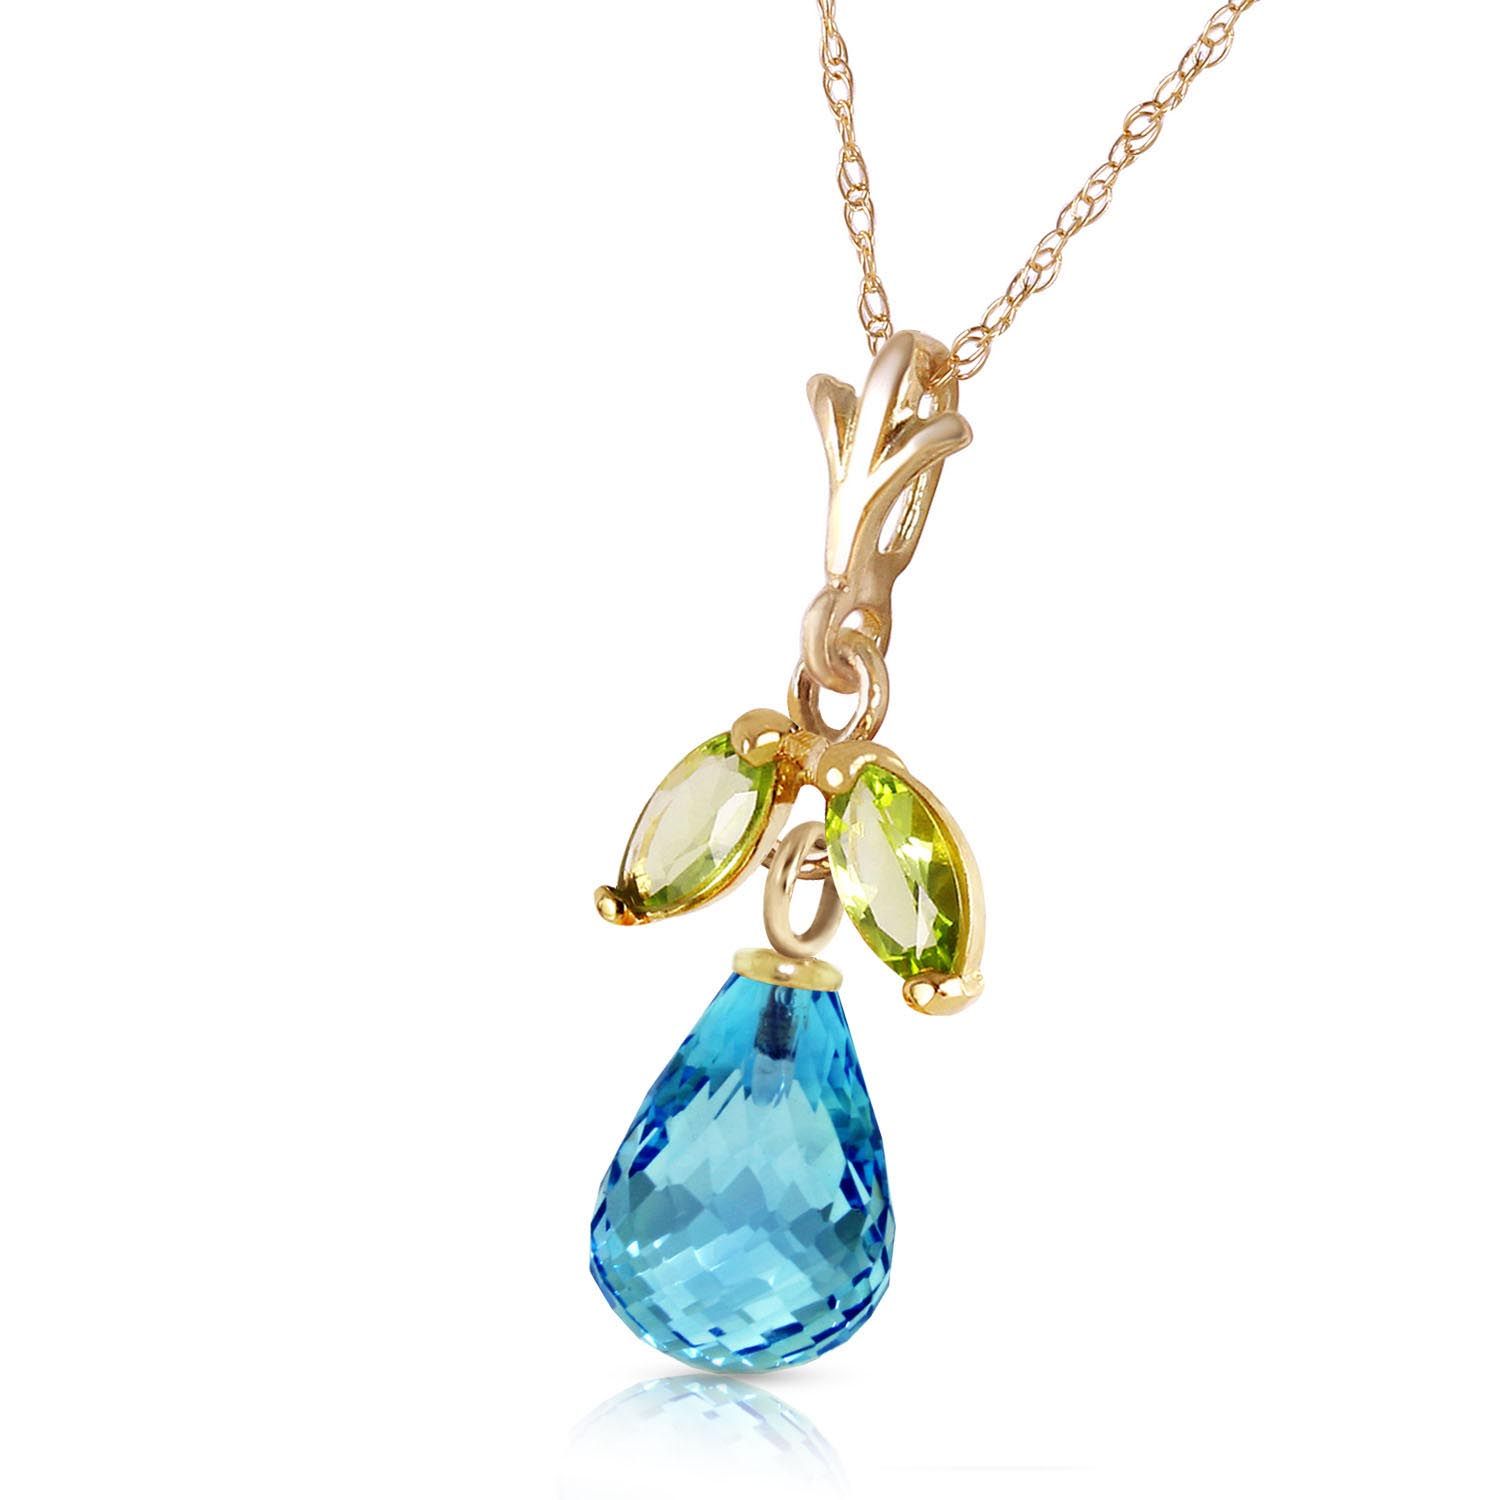 Blue Topaz and Peridot Snowdrop Pendant Necklace 1.7ctw in 9ct Gold